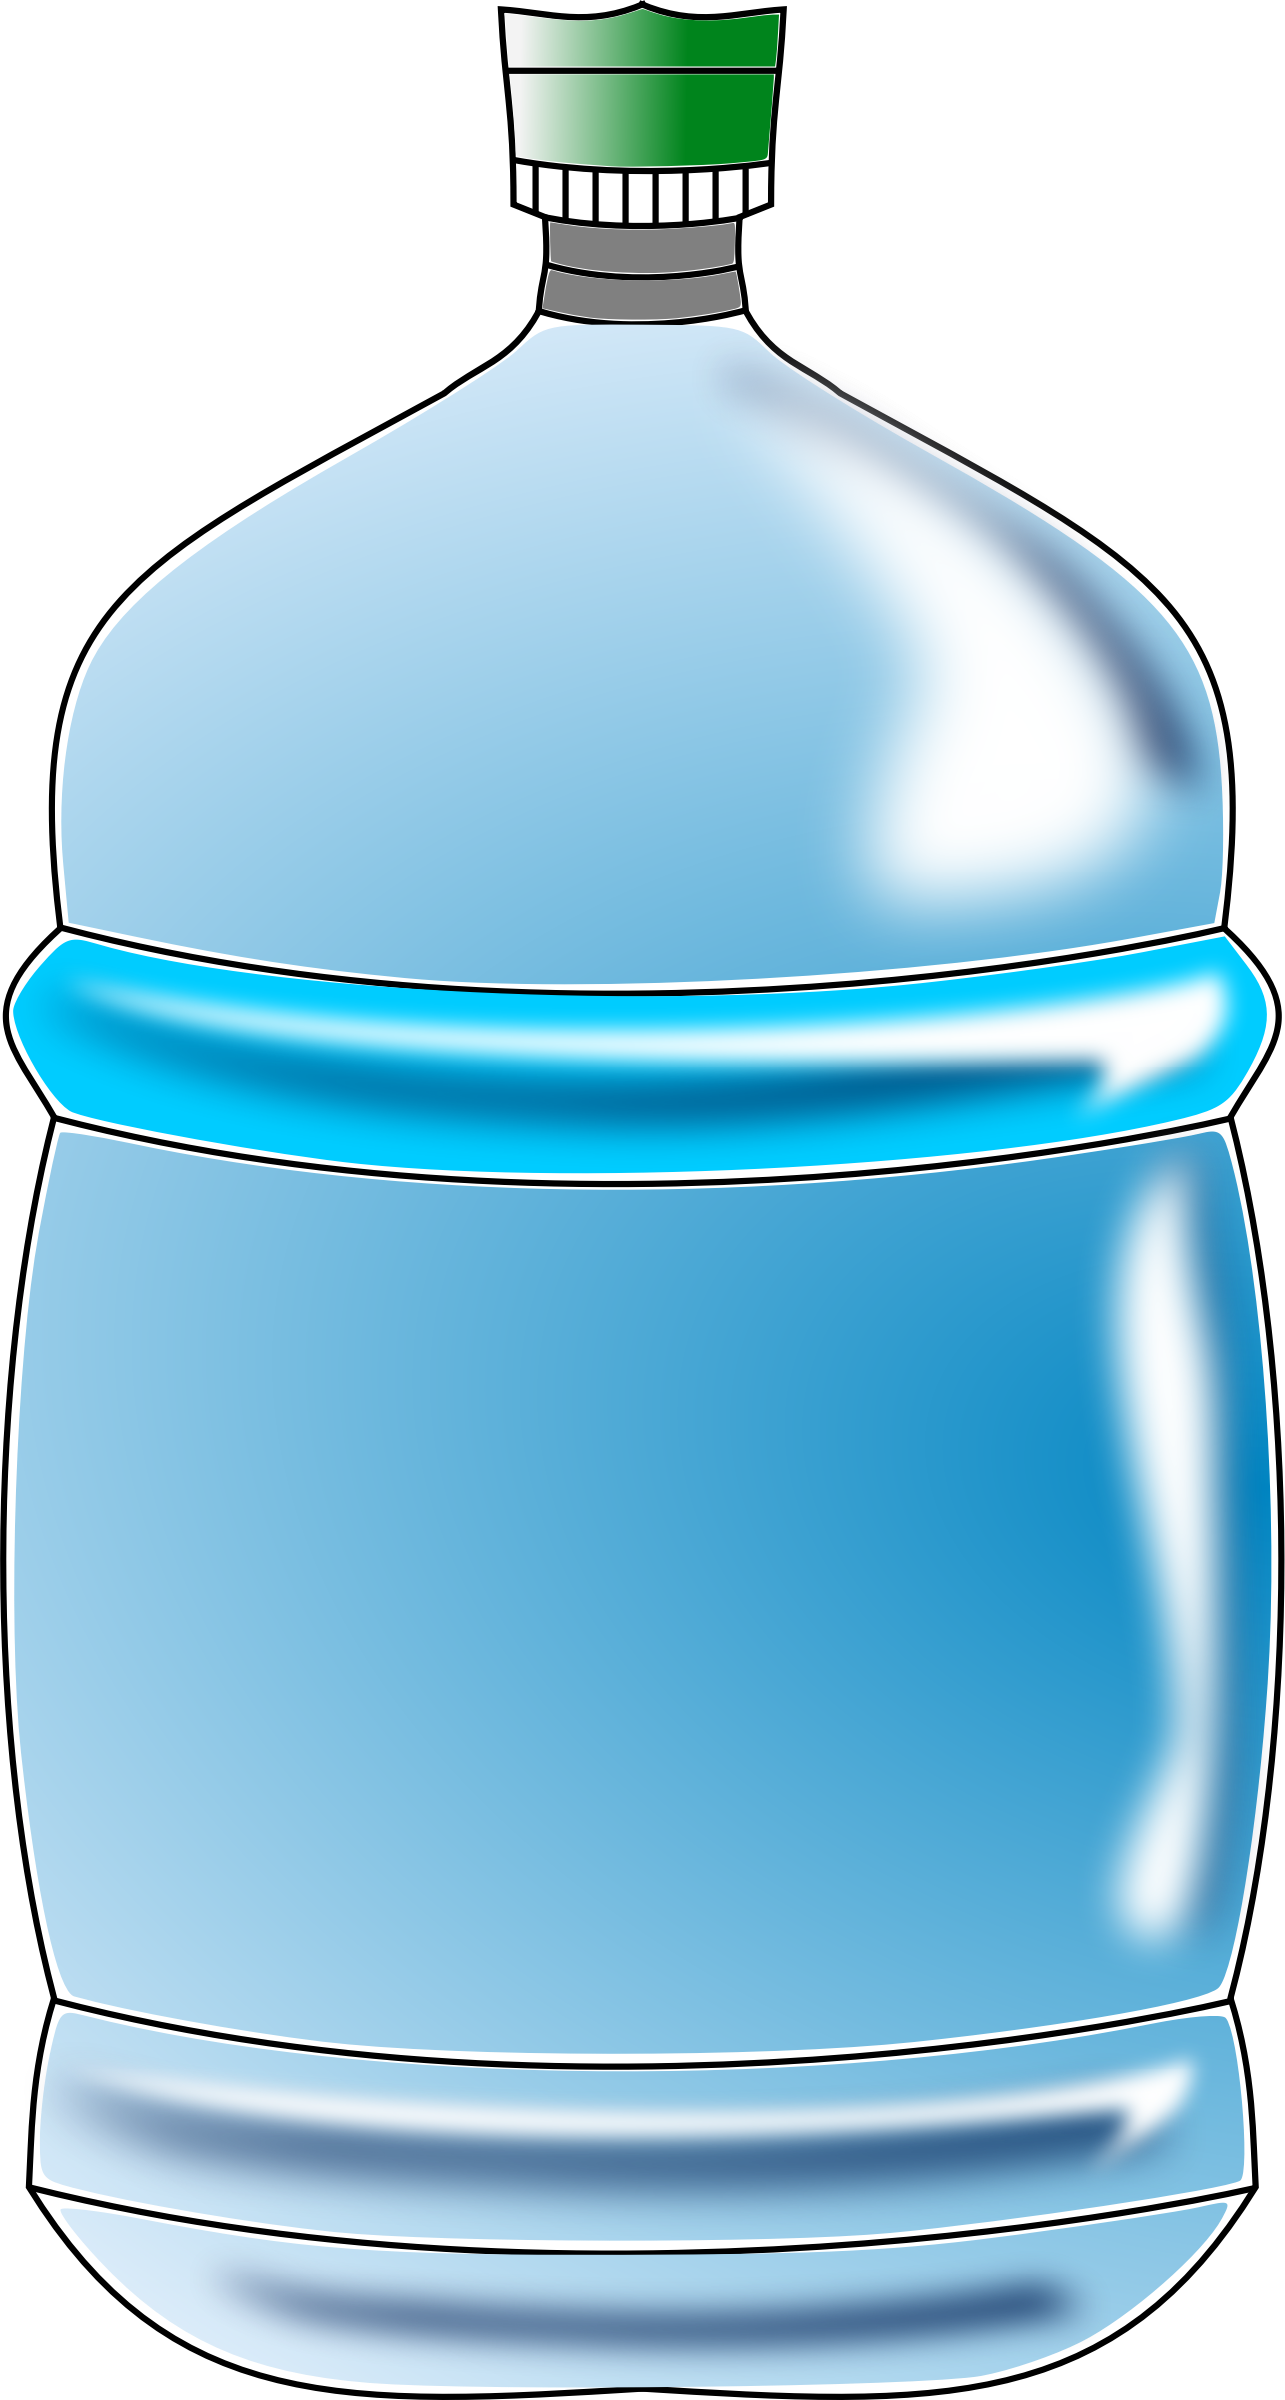 Water bottle clipart png.